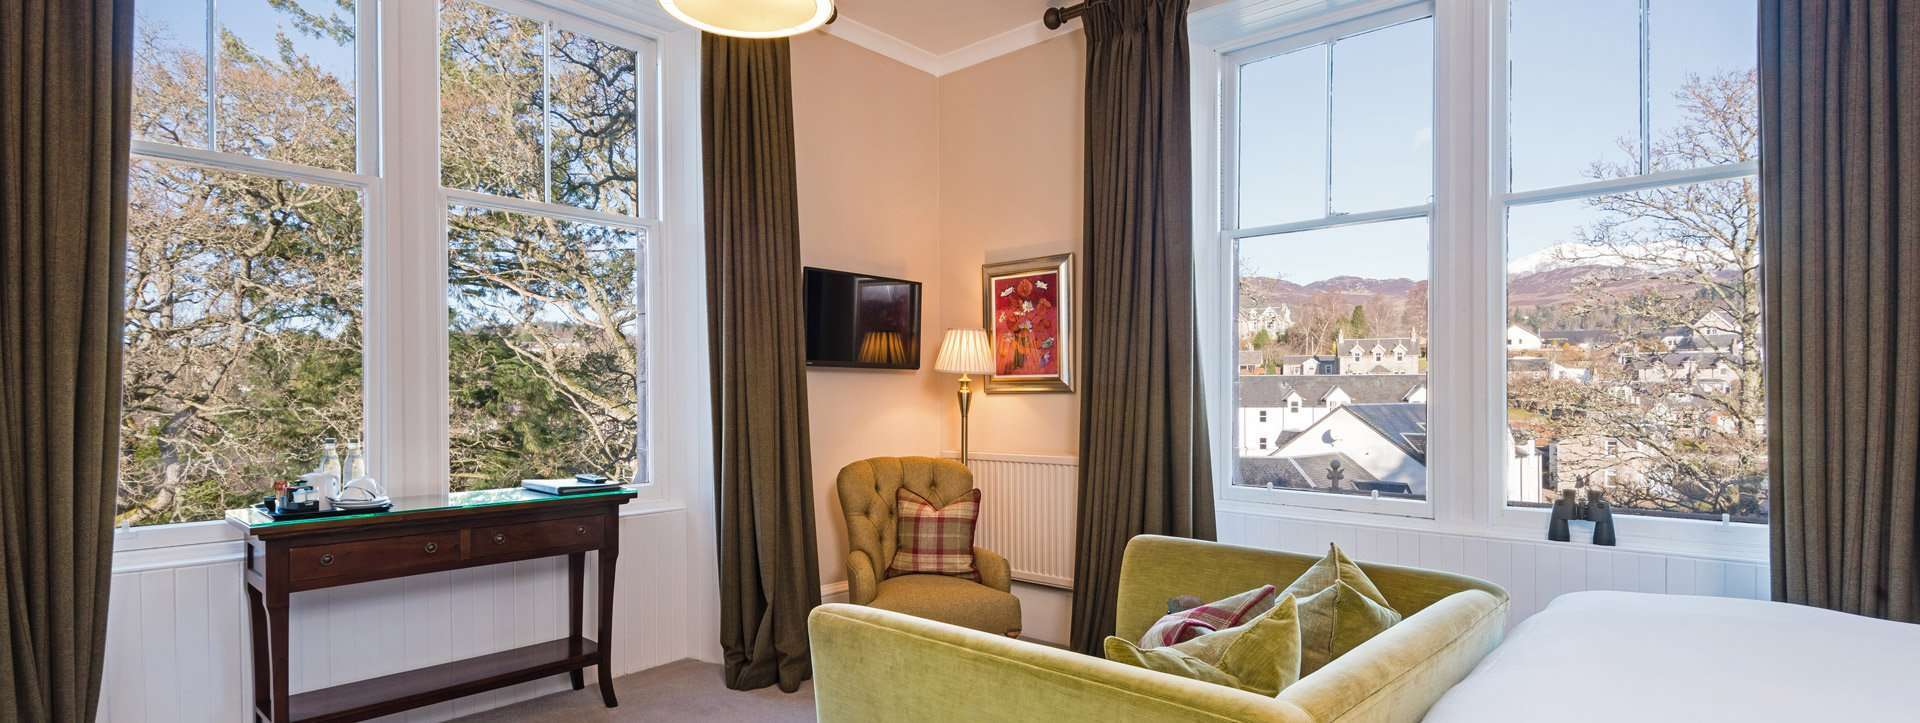 hotel pitlochry rooms